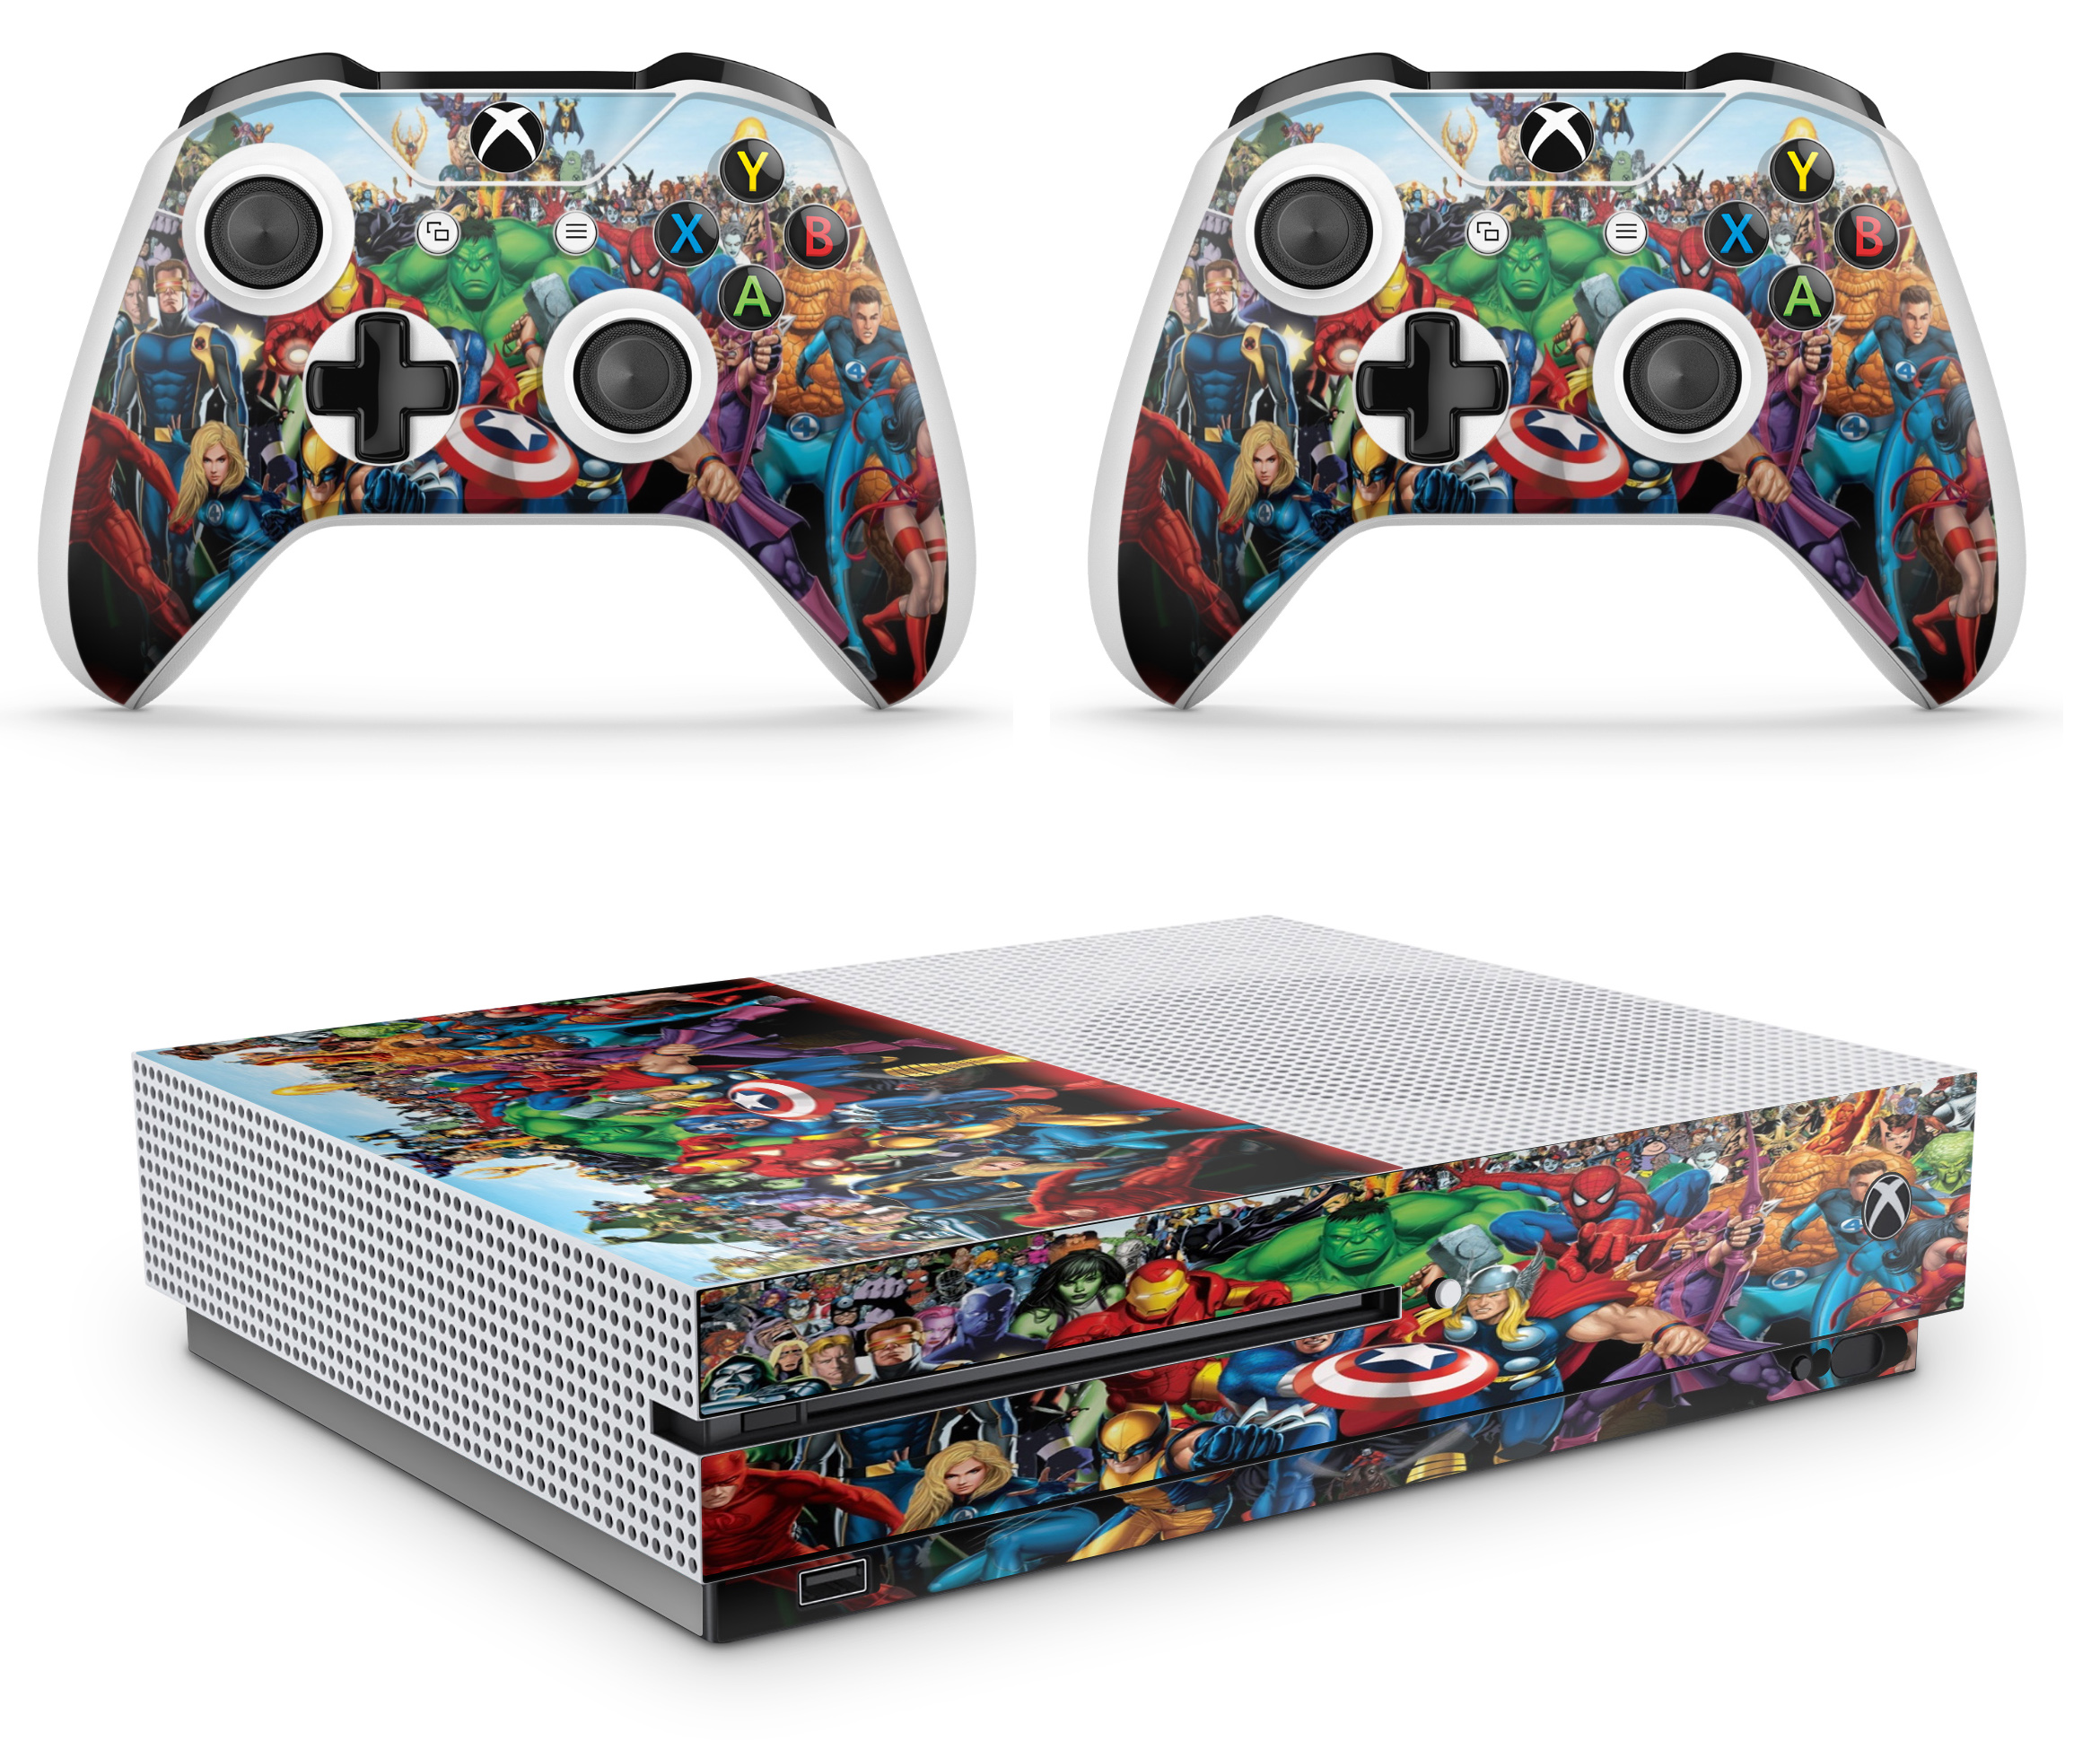 Xbox One S Console Skin Decal Sticker + 2 Controller Skins ...Xbox One Skins